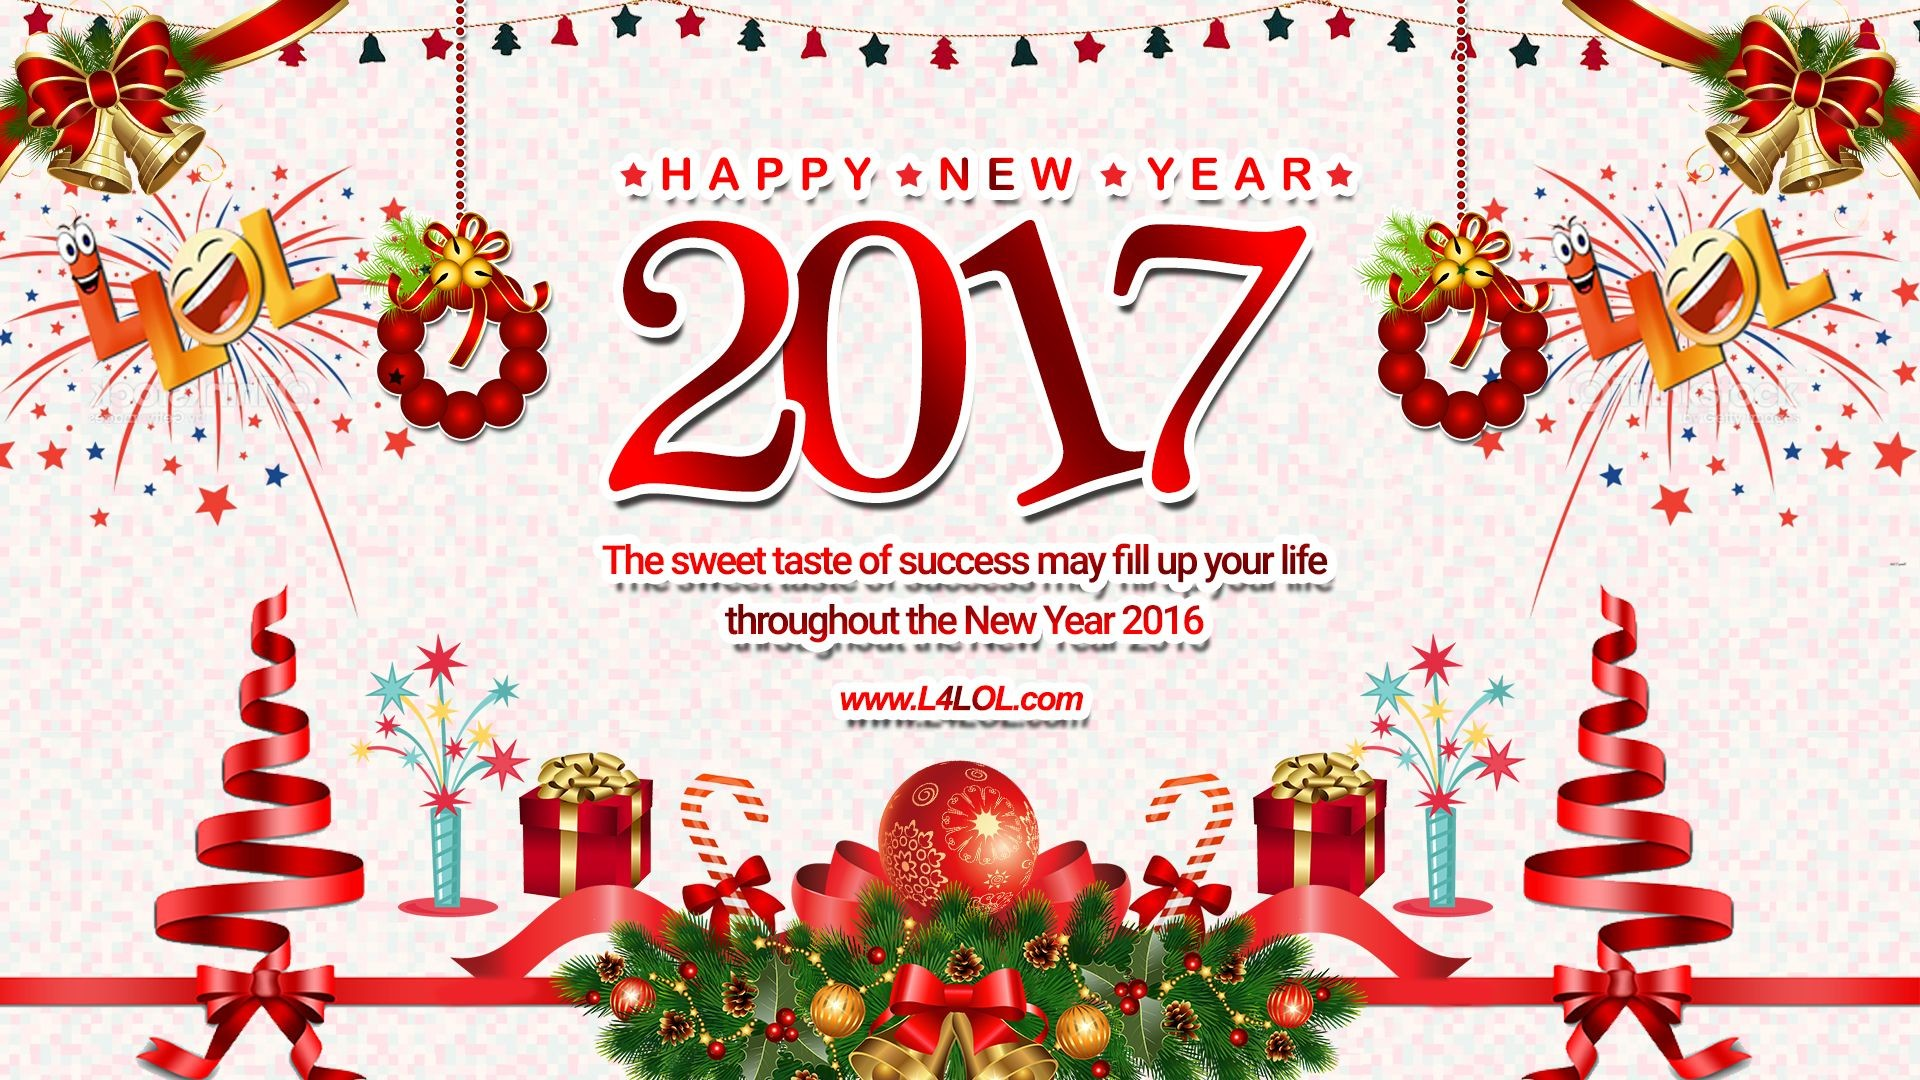 Merry Christmas And Happy New Year 2017 Wallpaper (04)